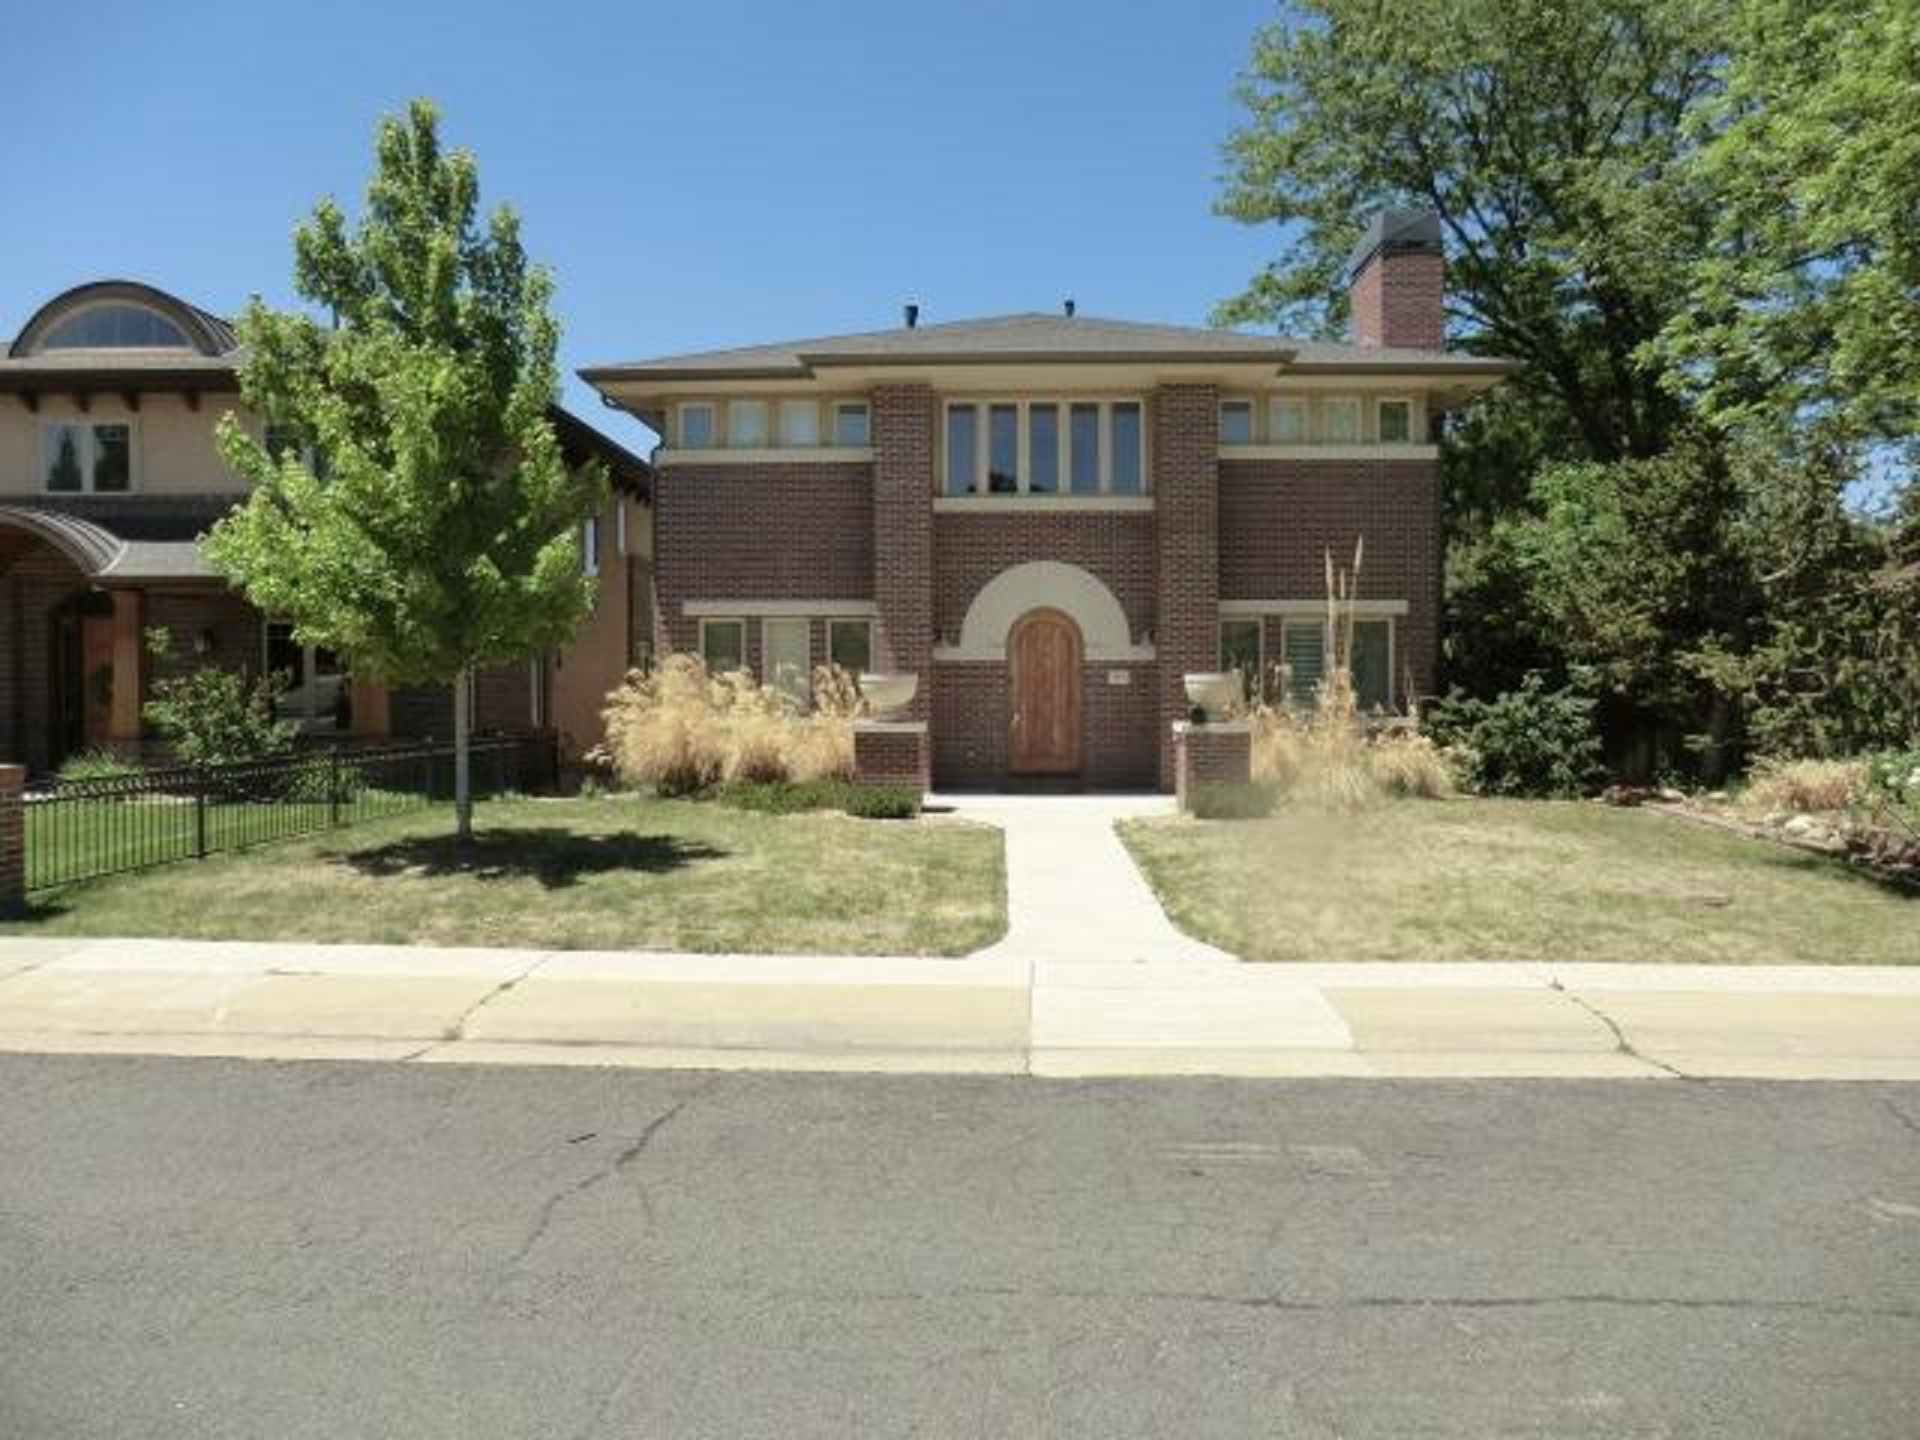 3381 S Ash St, Denver, CO 80222